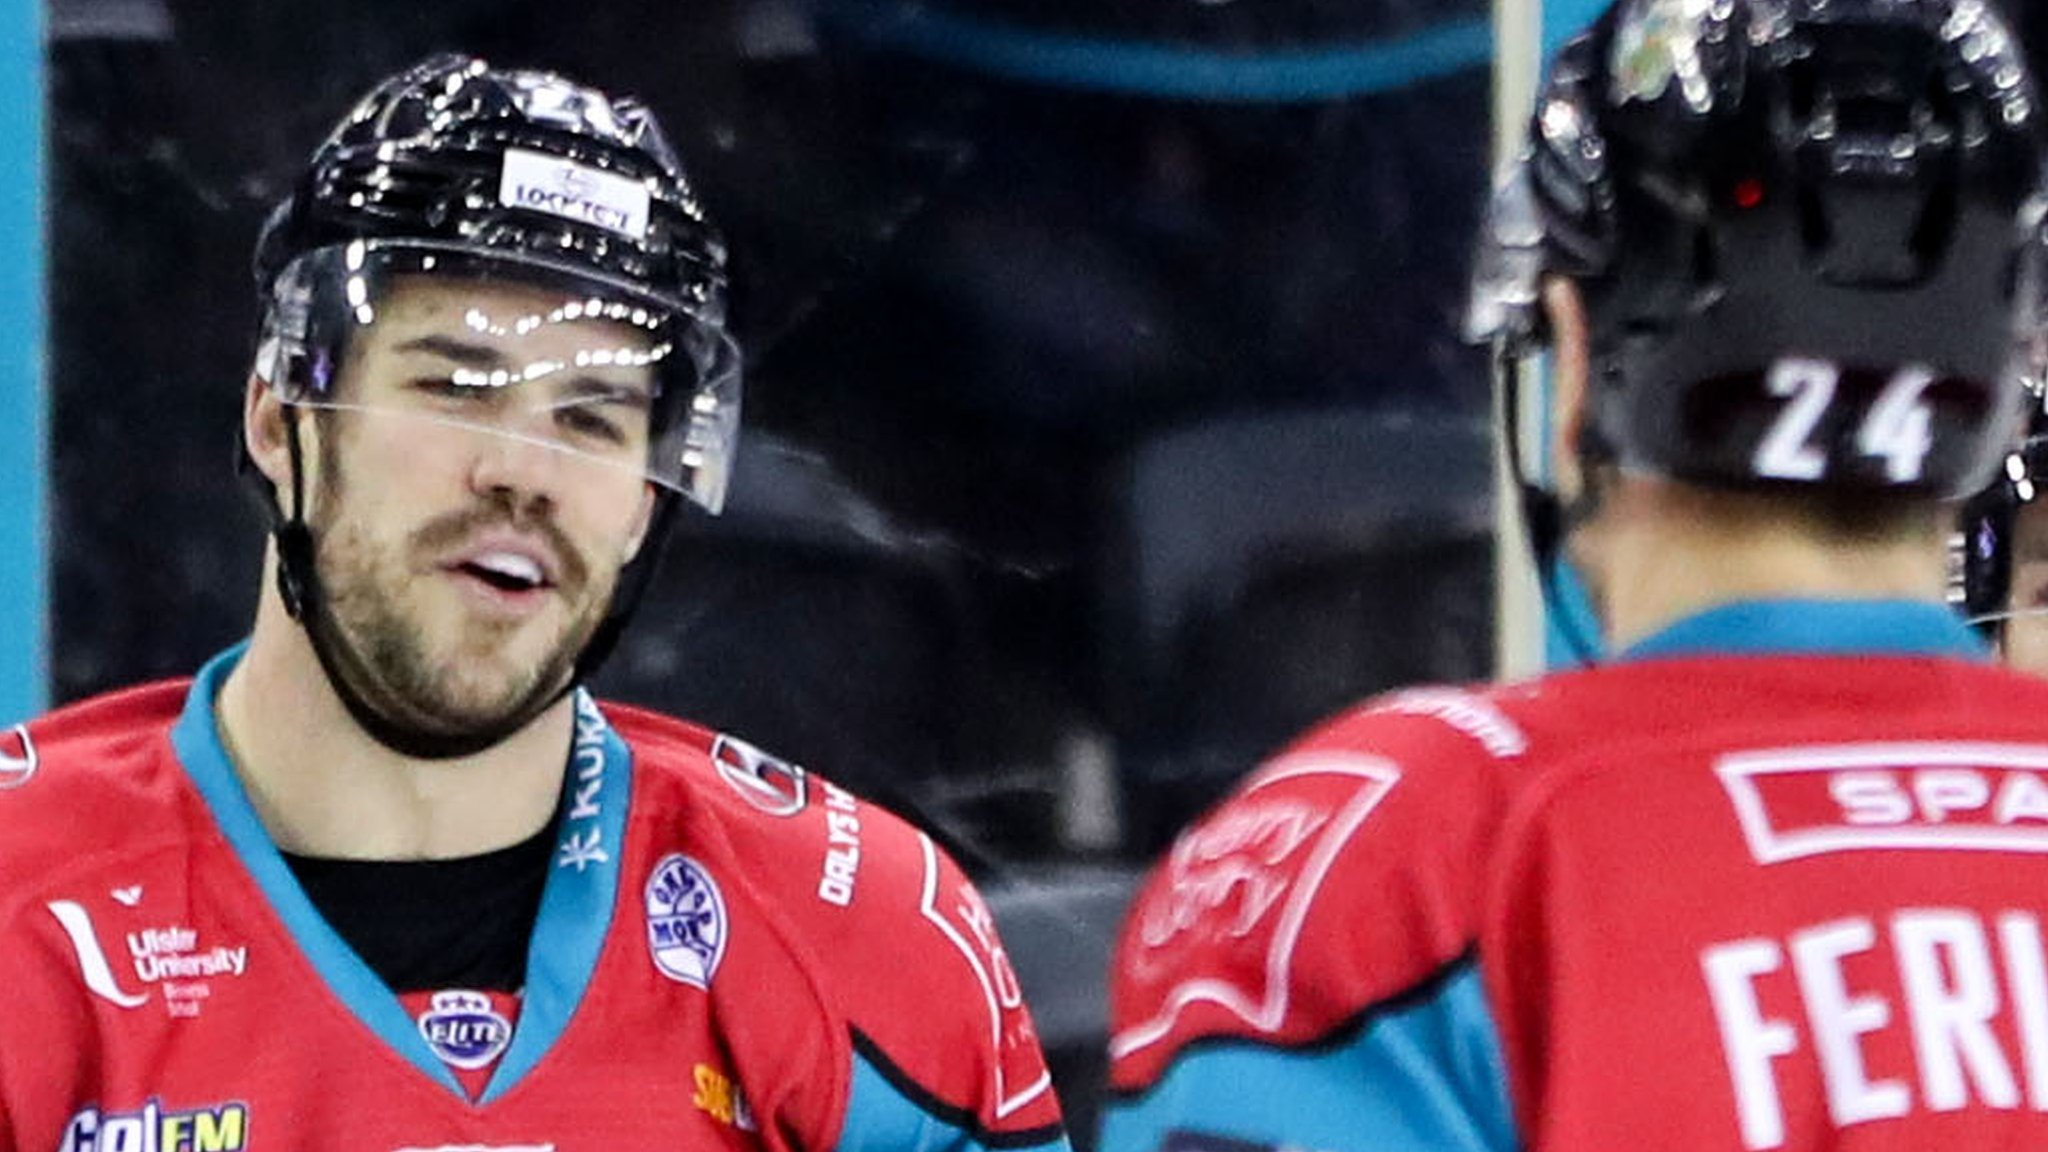 Challenge Cup: Giants cruise to semi-final spot with win over Stars